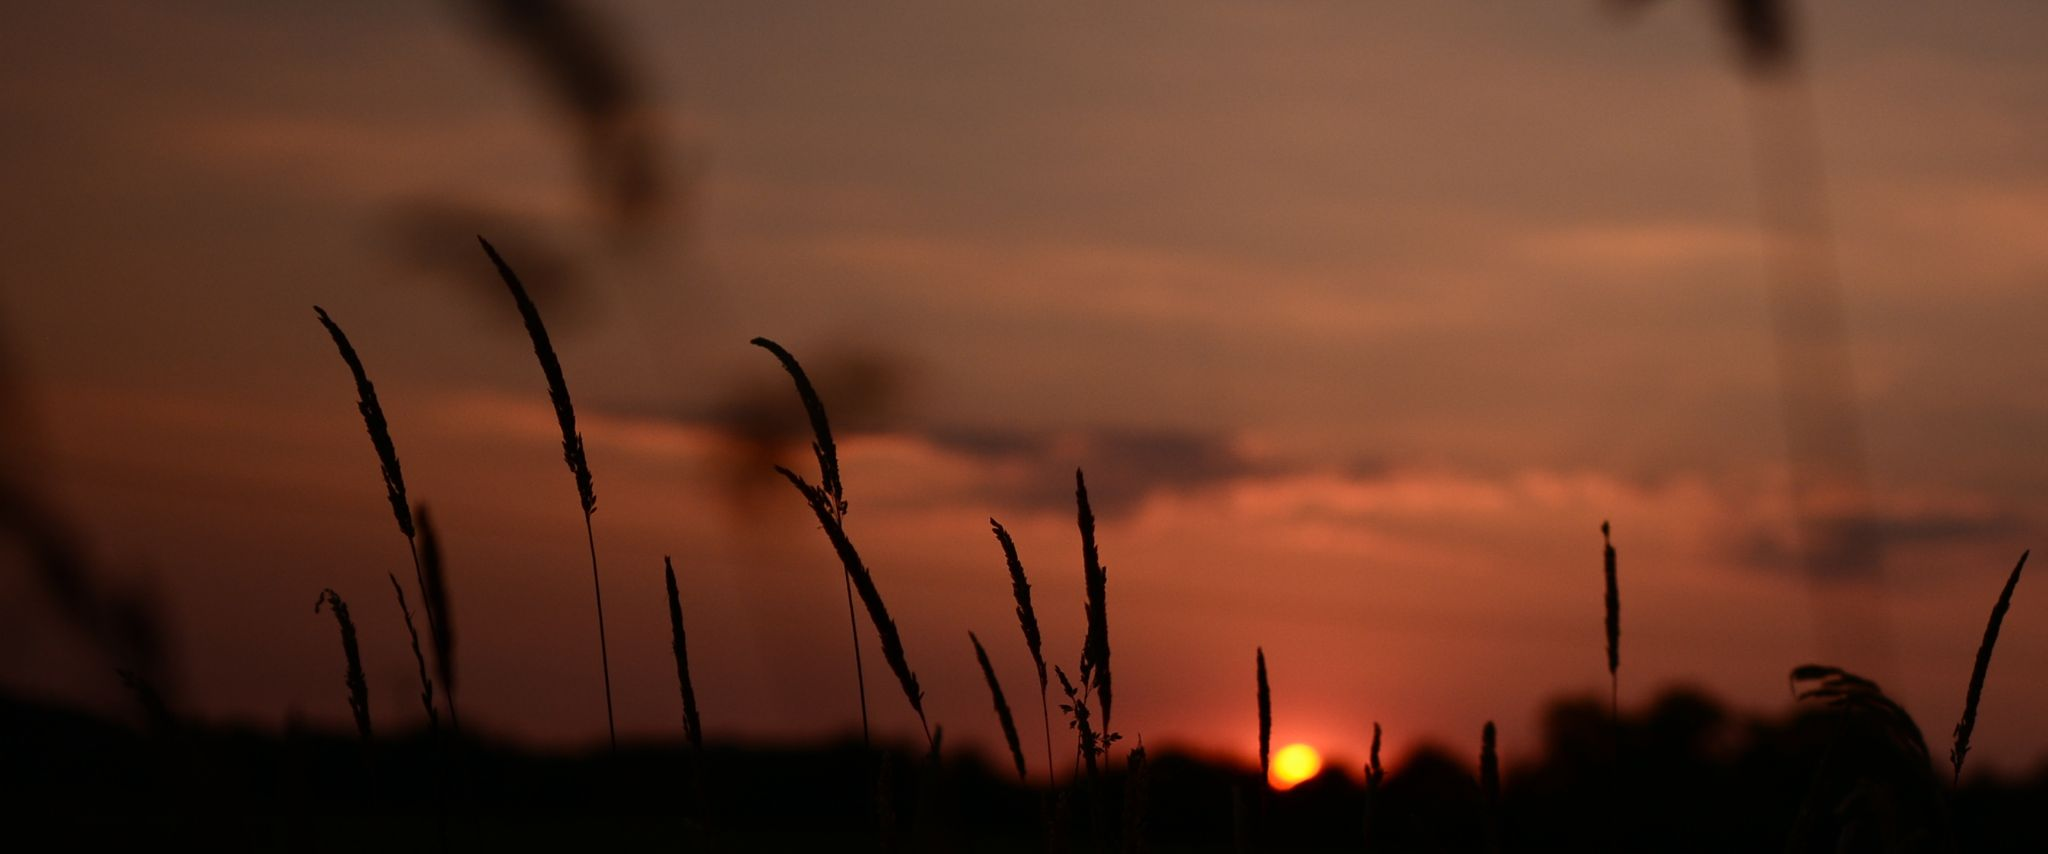 nature - couche soleil by YnnaDalli